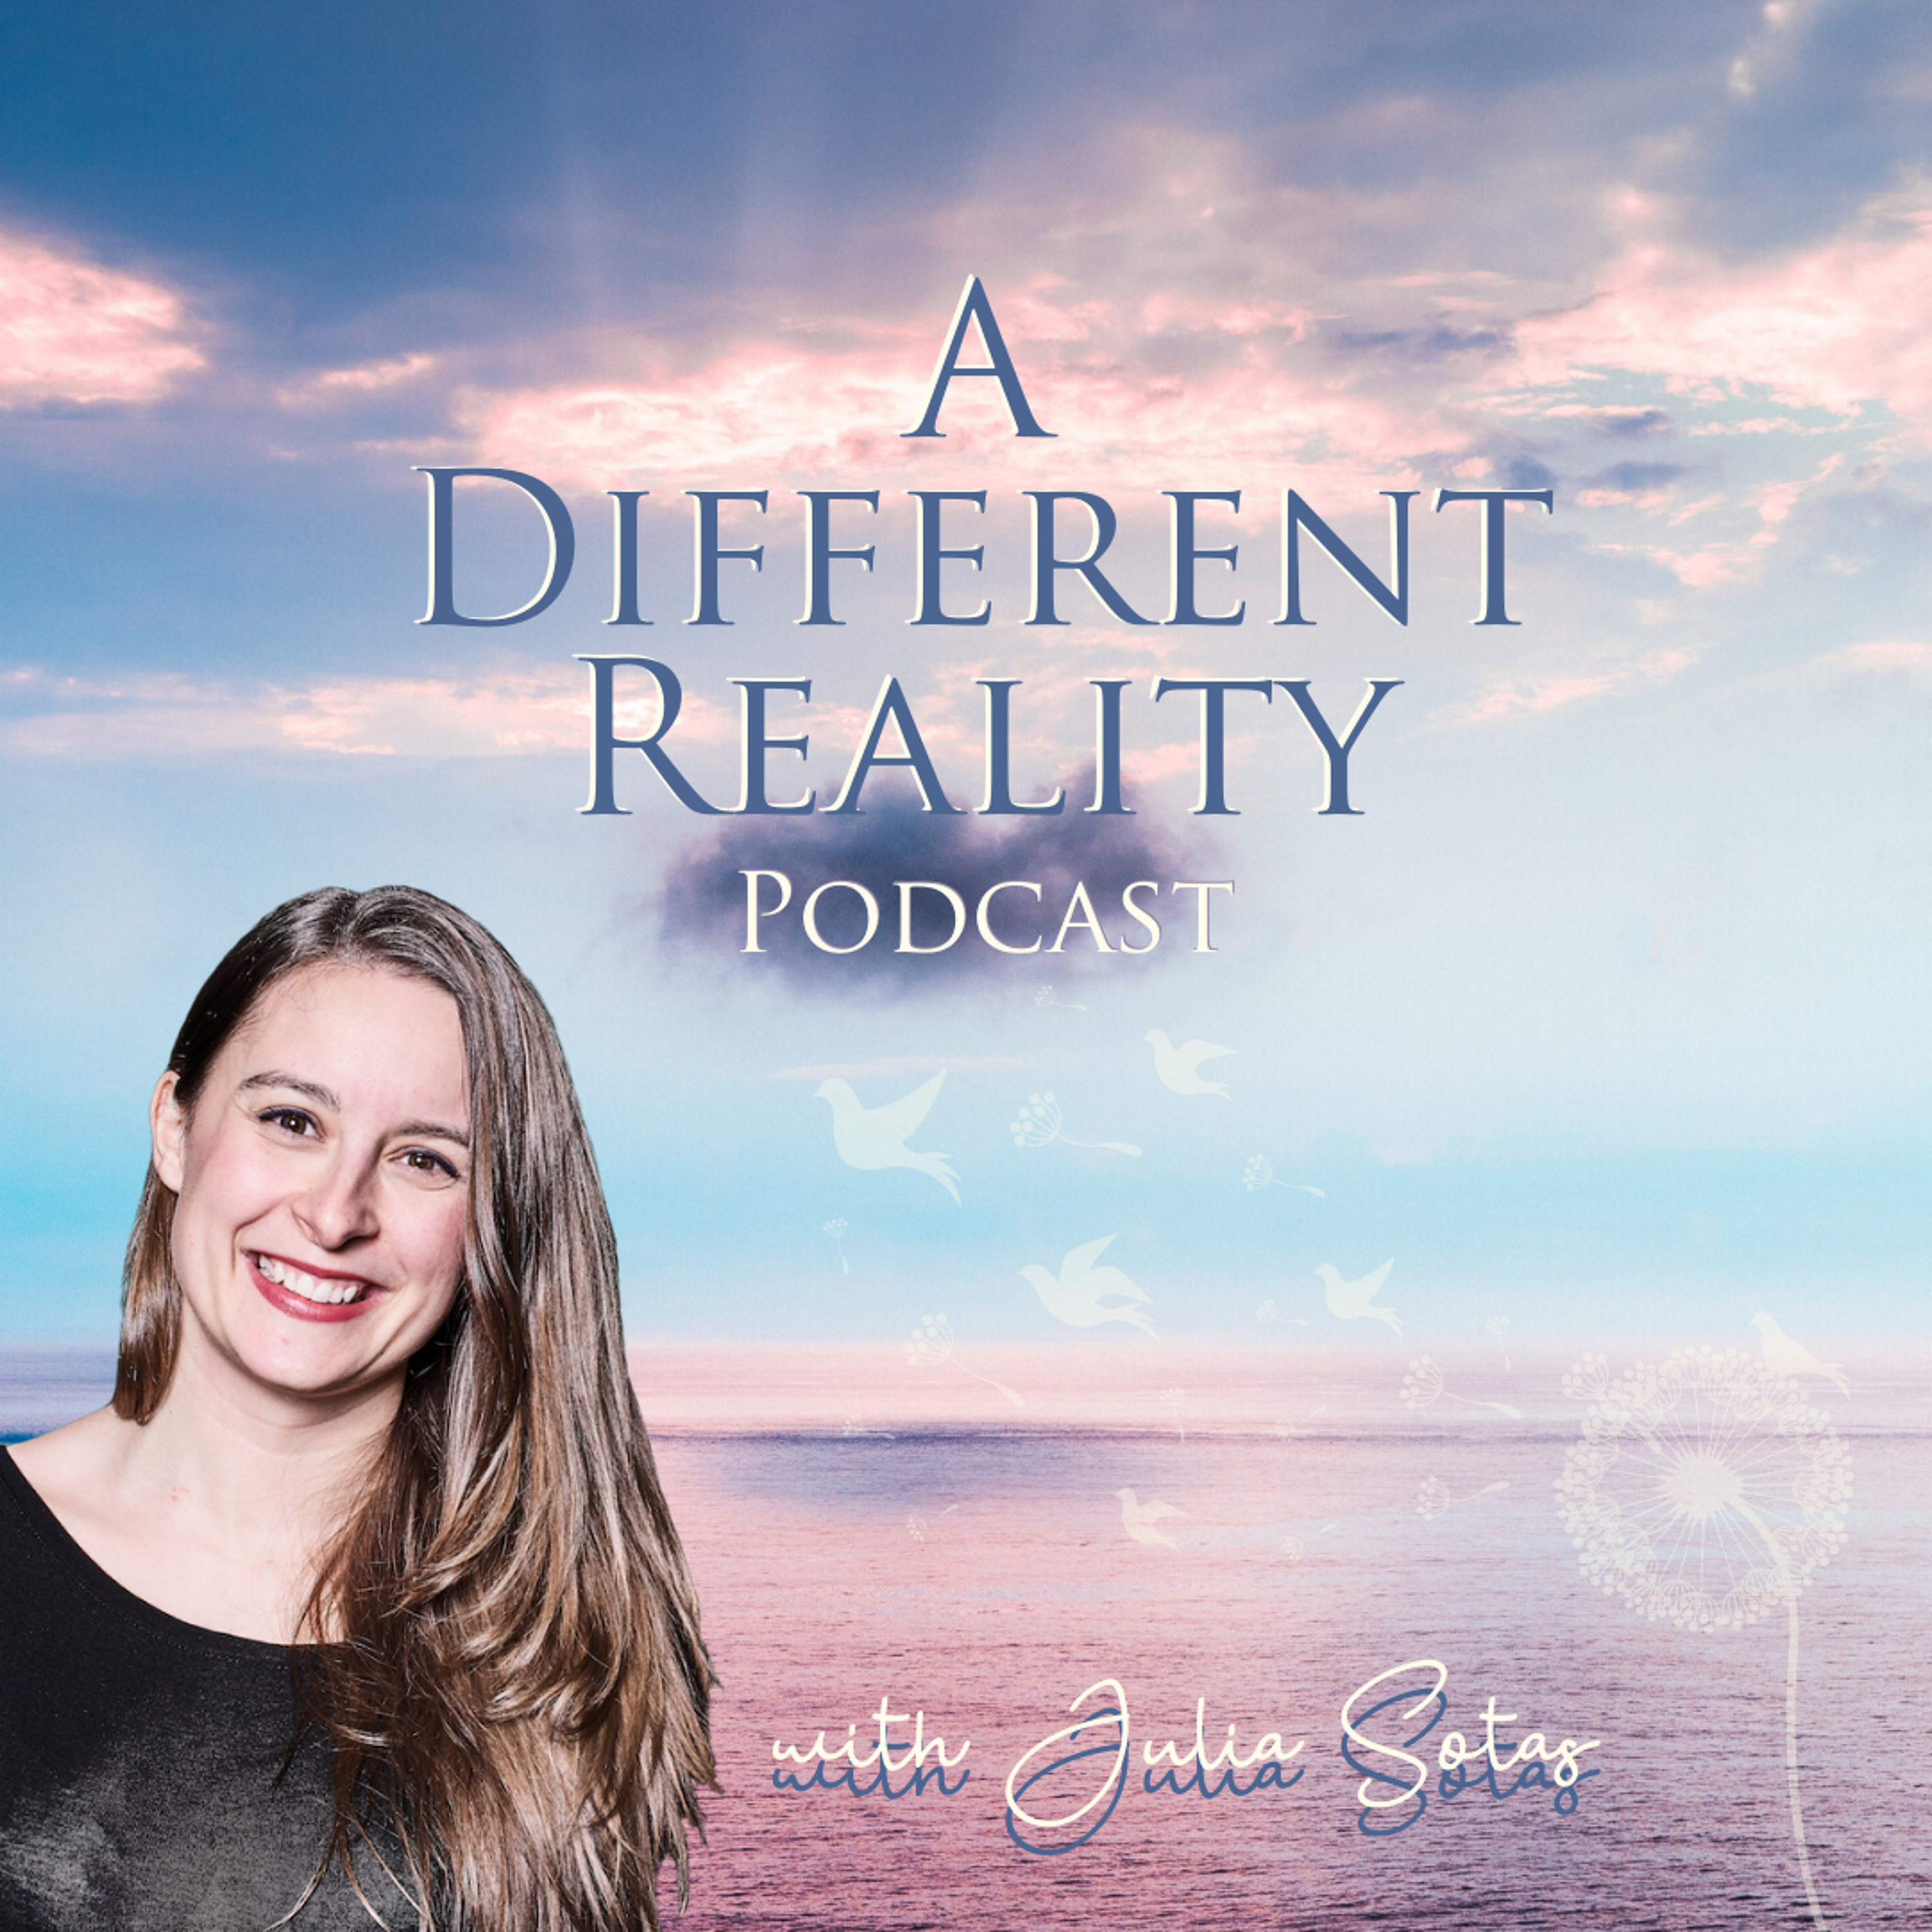 05. A Different Reality Podcast